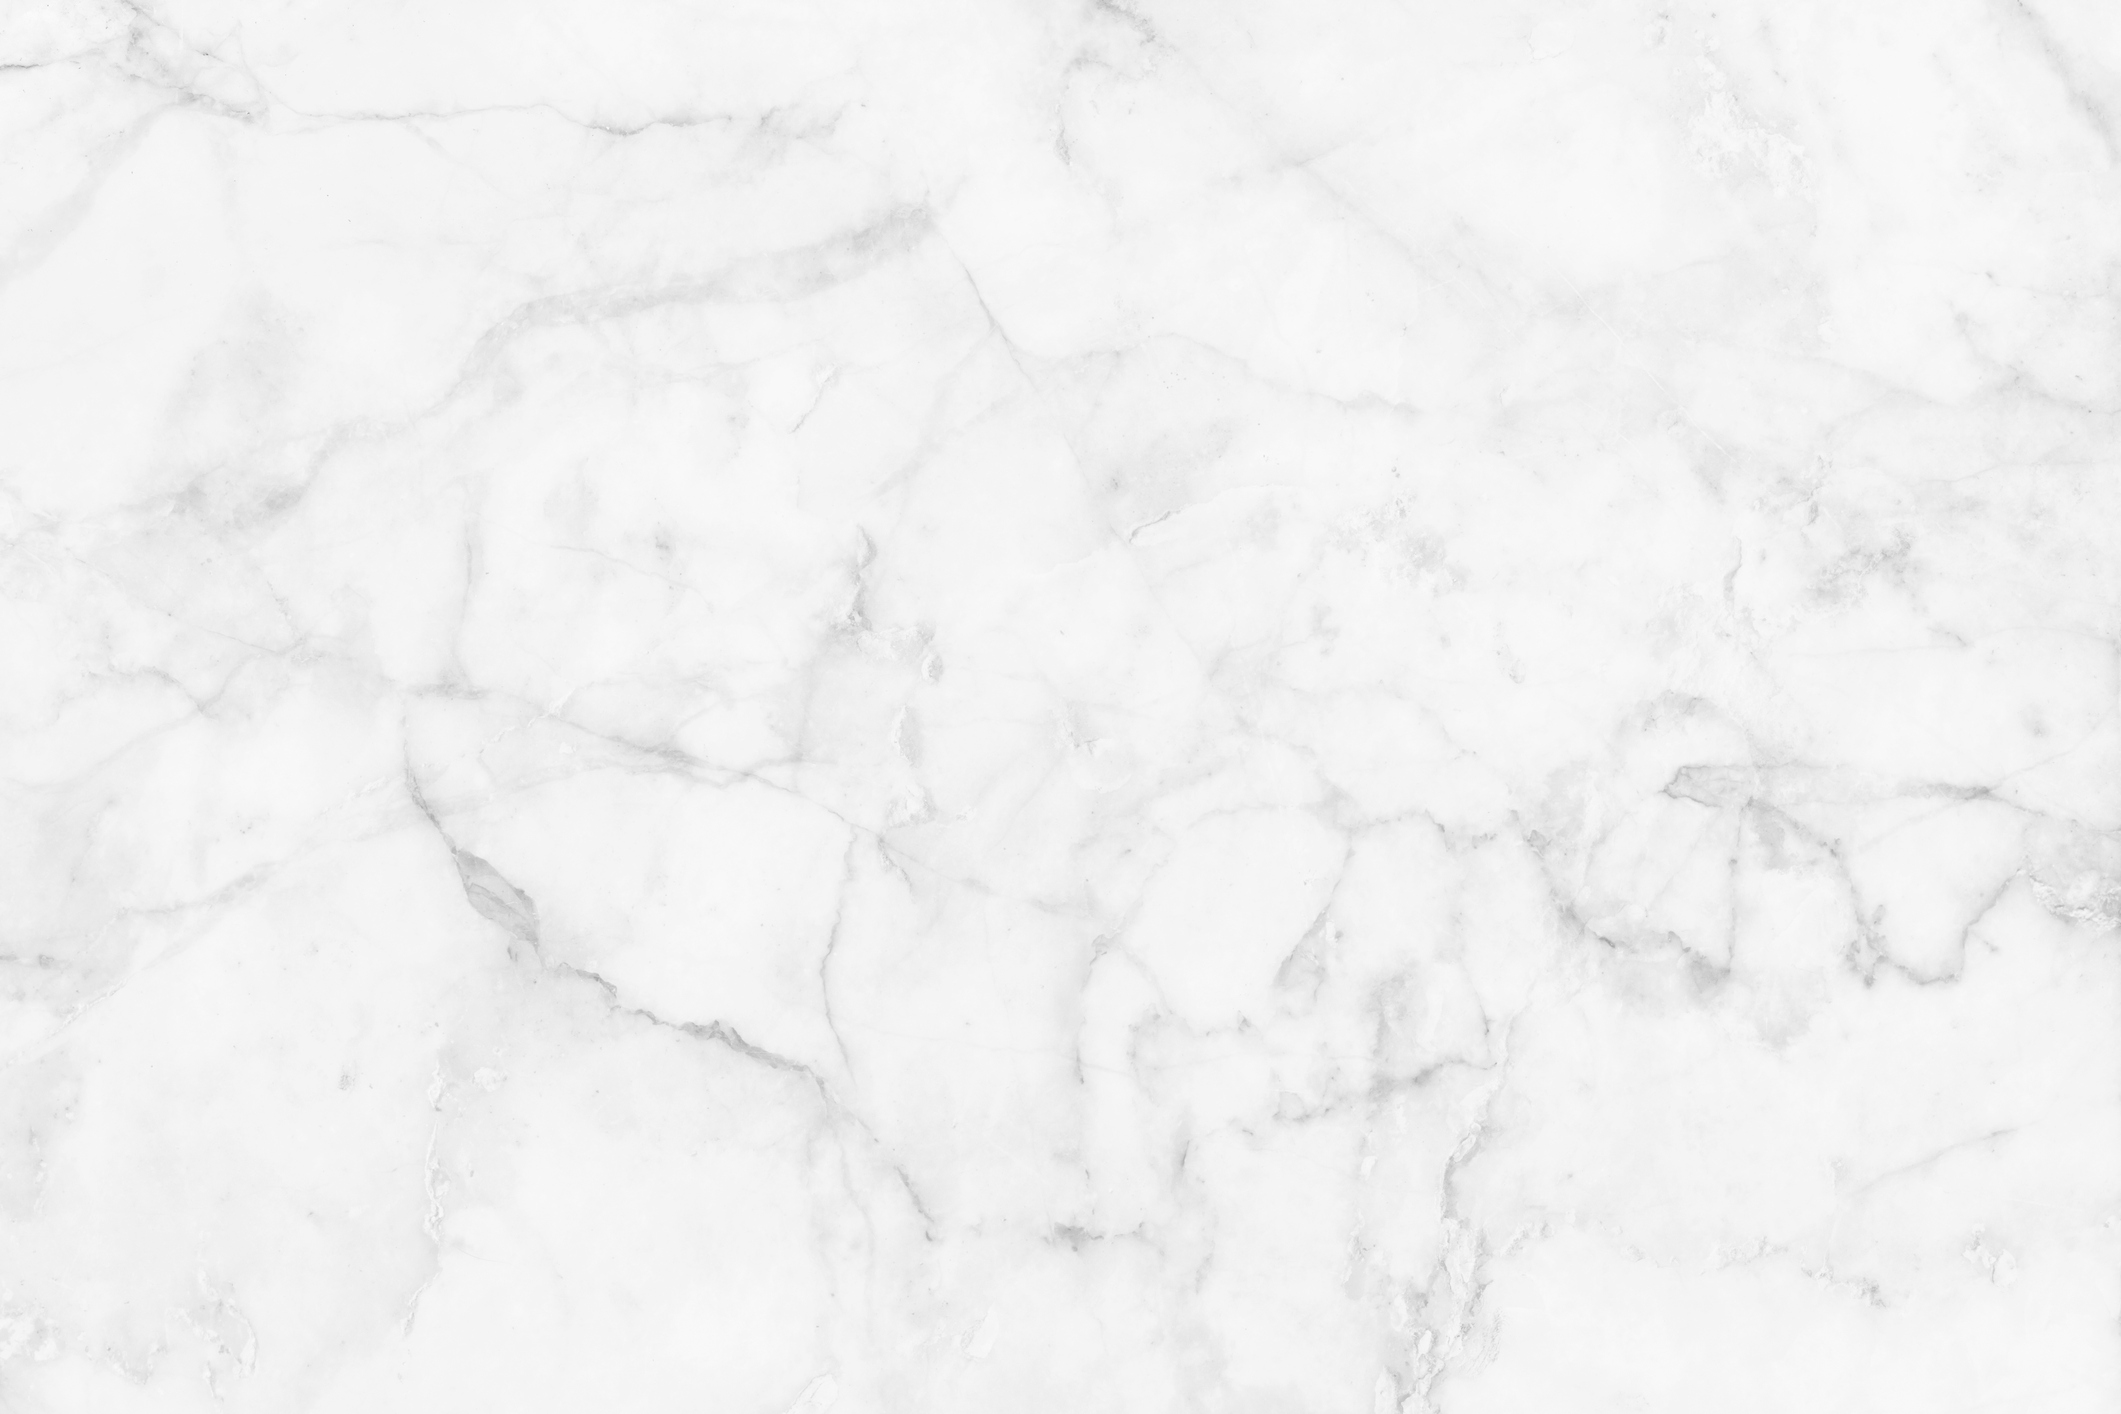 white marble background. White marble patterned texture background